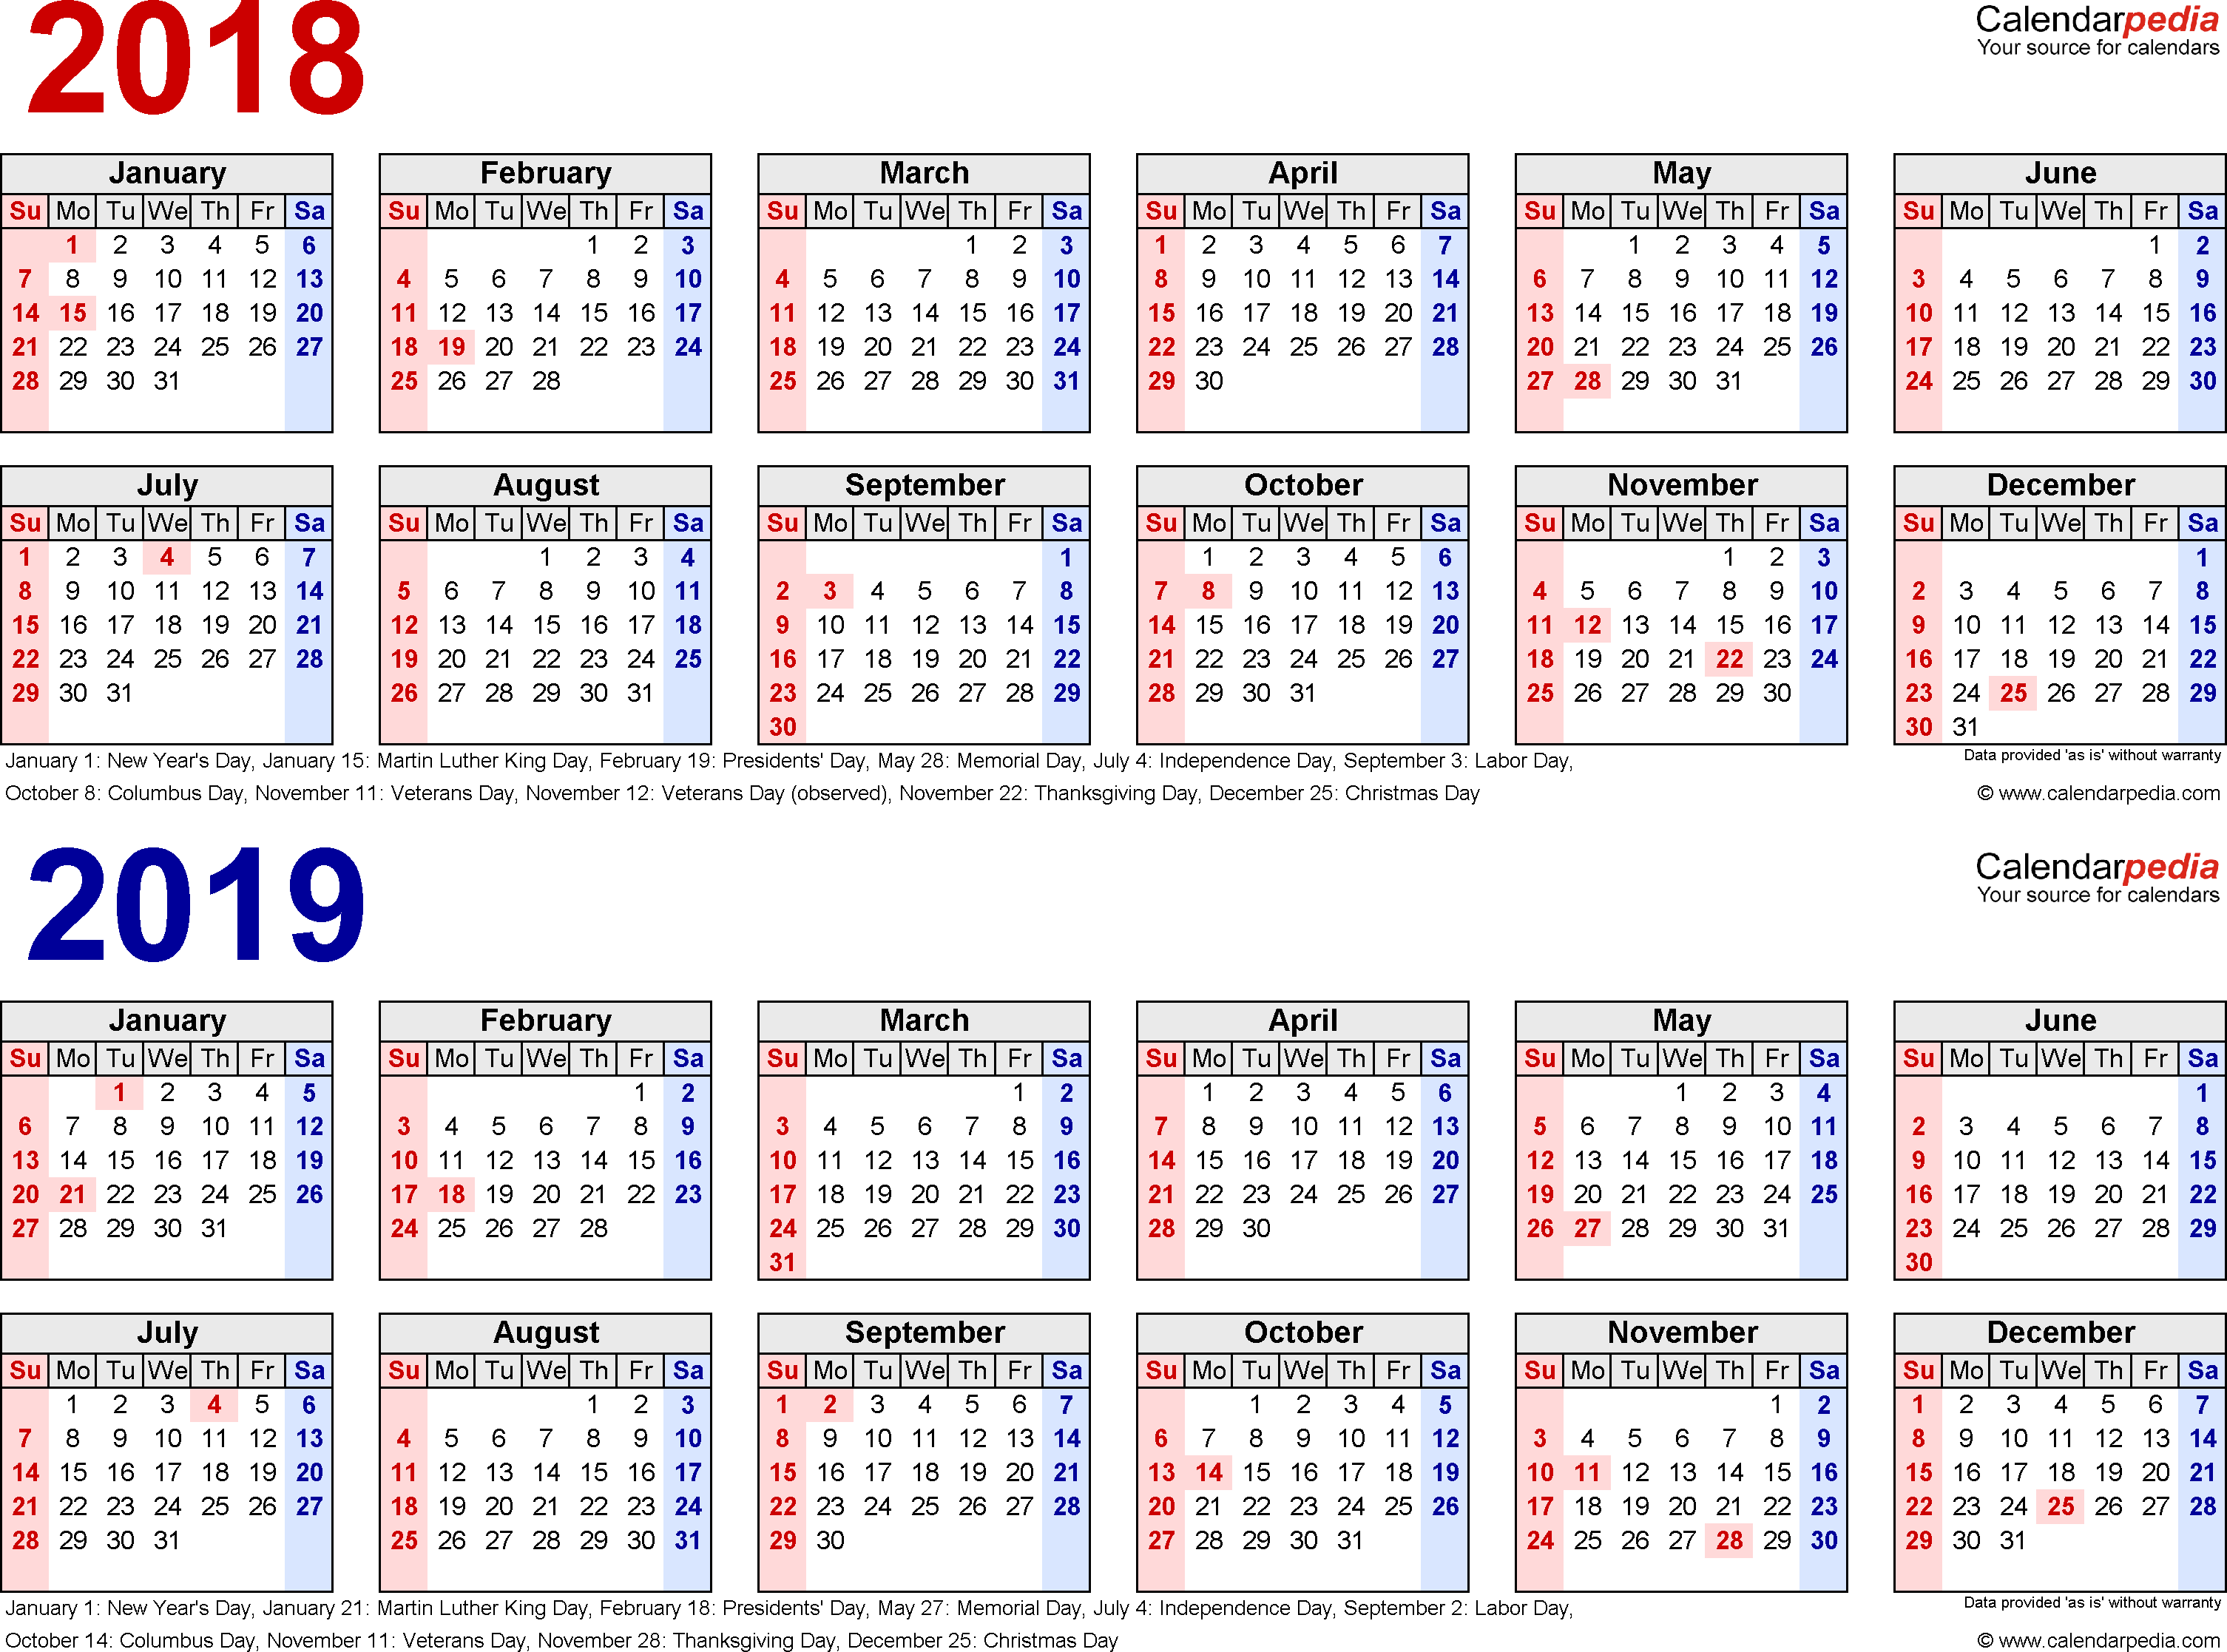 template 1 excel template for two year calendar 20182019 landscape orientation